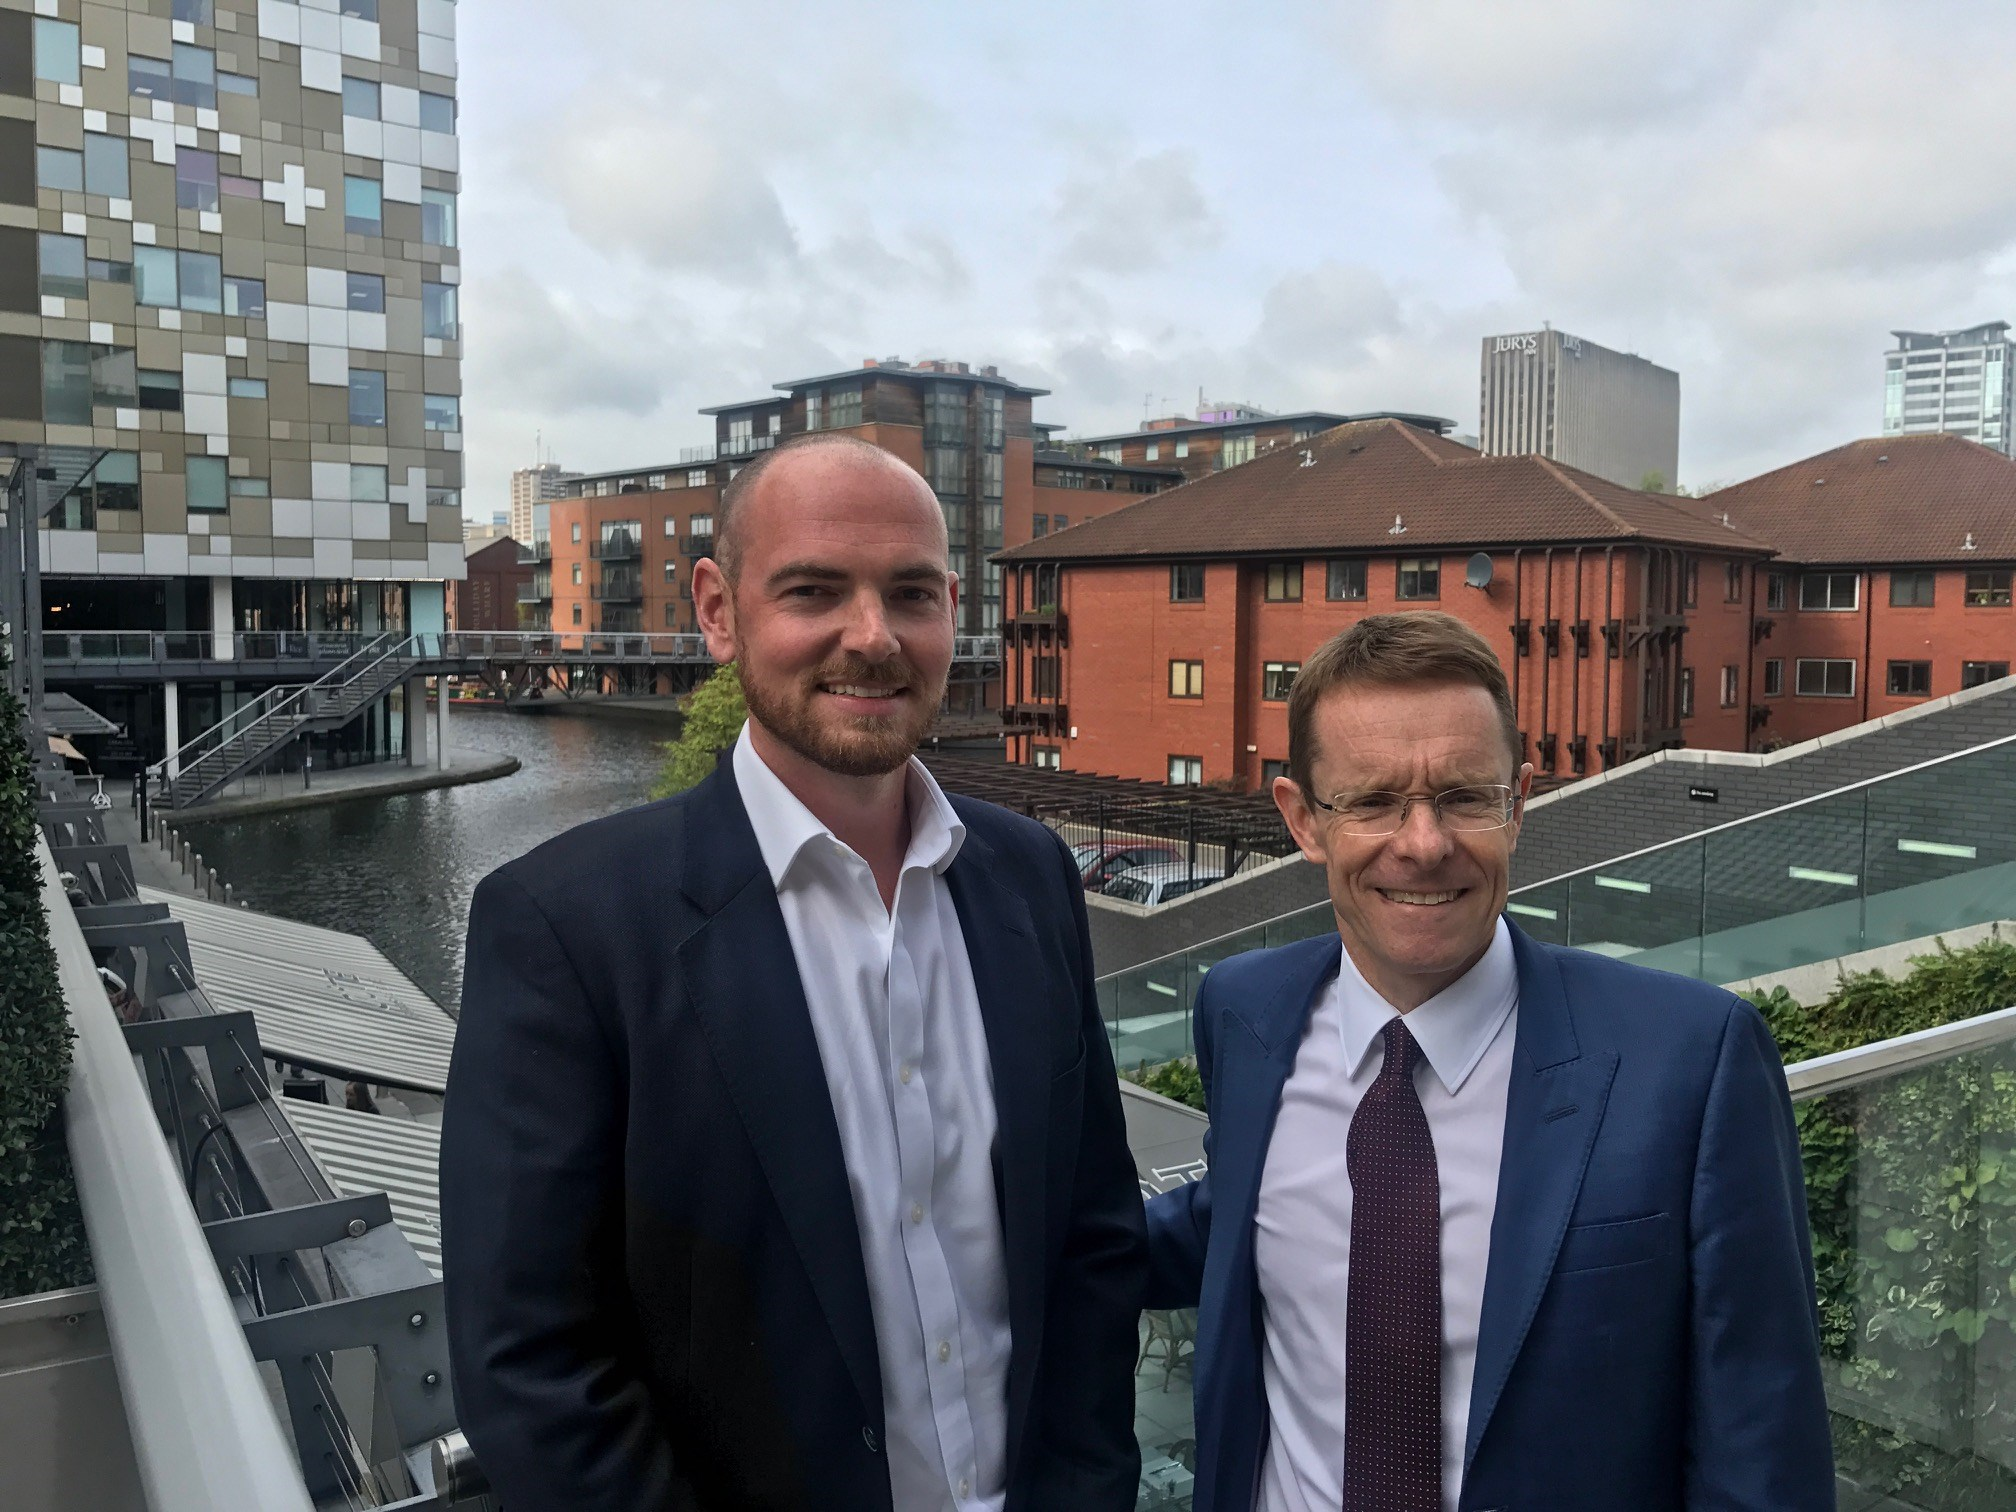 Mayor appoints construction industry leader to business role